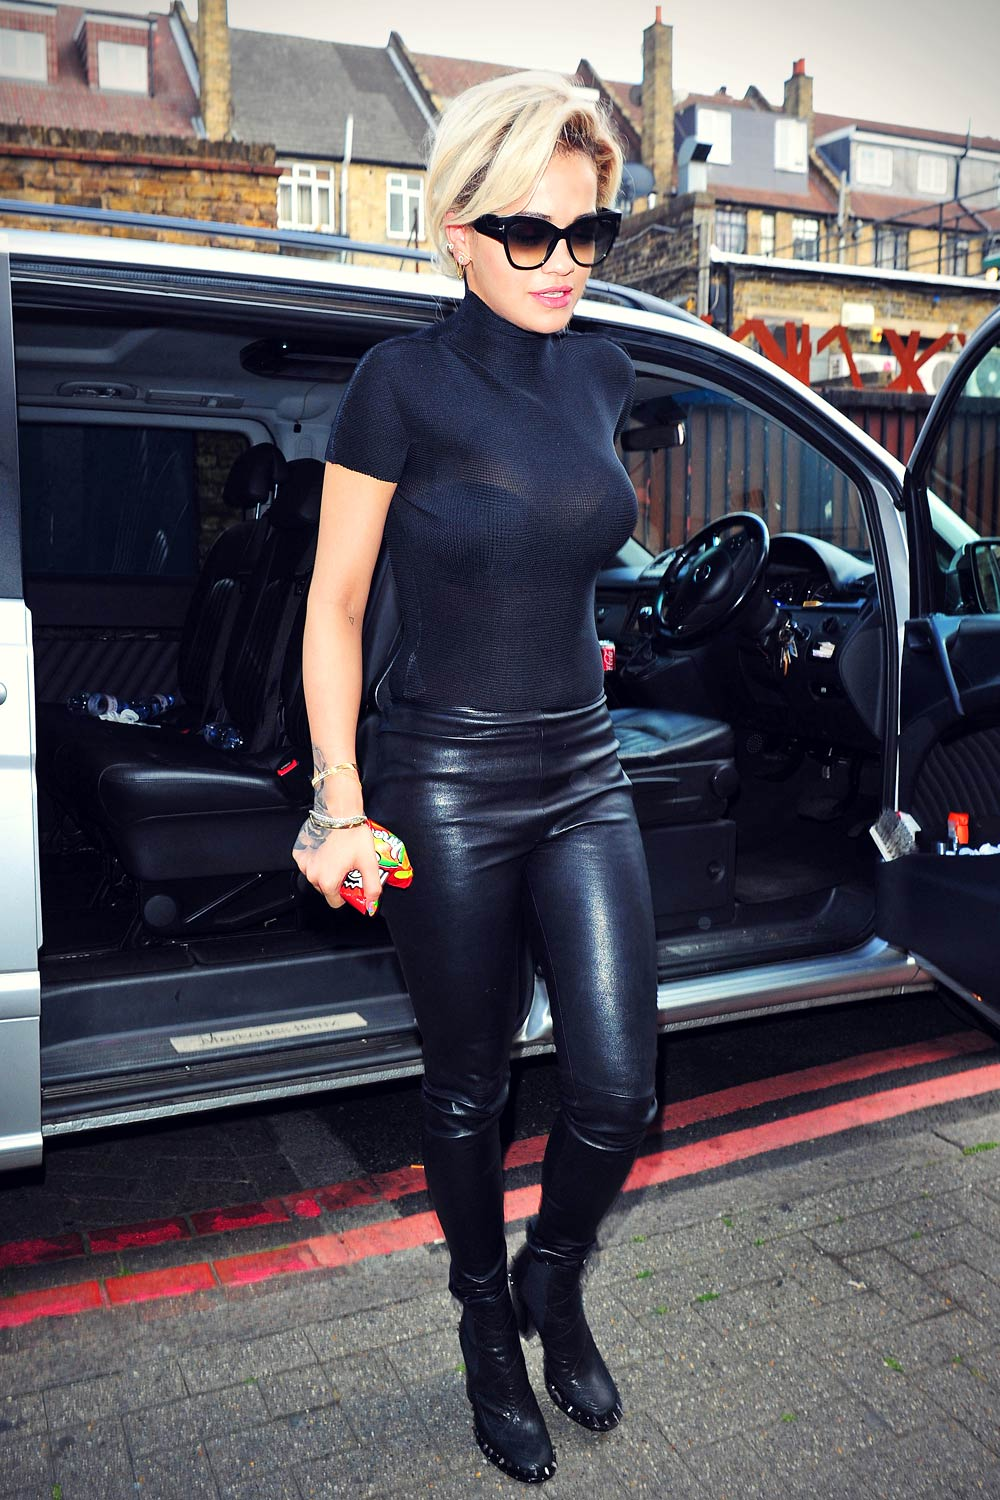 Rita Ora Arriving And Leaving A Studio In London Leather